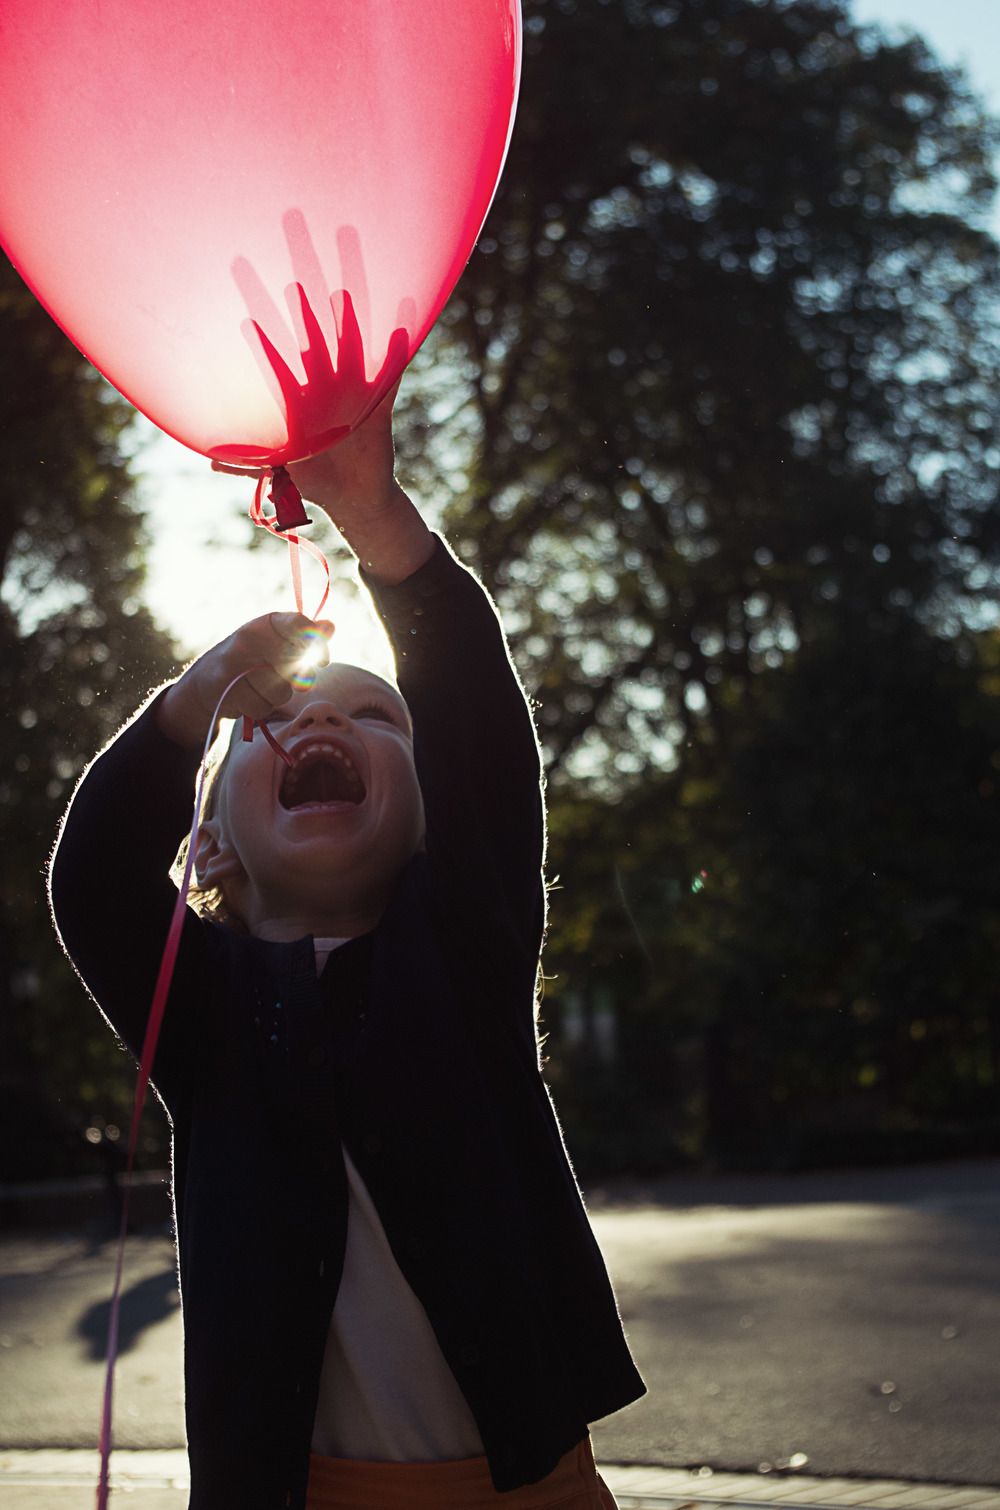 On Friday, I shot some family portraits for the Griffin family. I brought Charlotte a balloon and after warming up to it a bit, she couldn't get enough. There were lots of really great photos from the day, but this is probably my favorite capture.